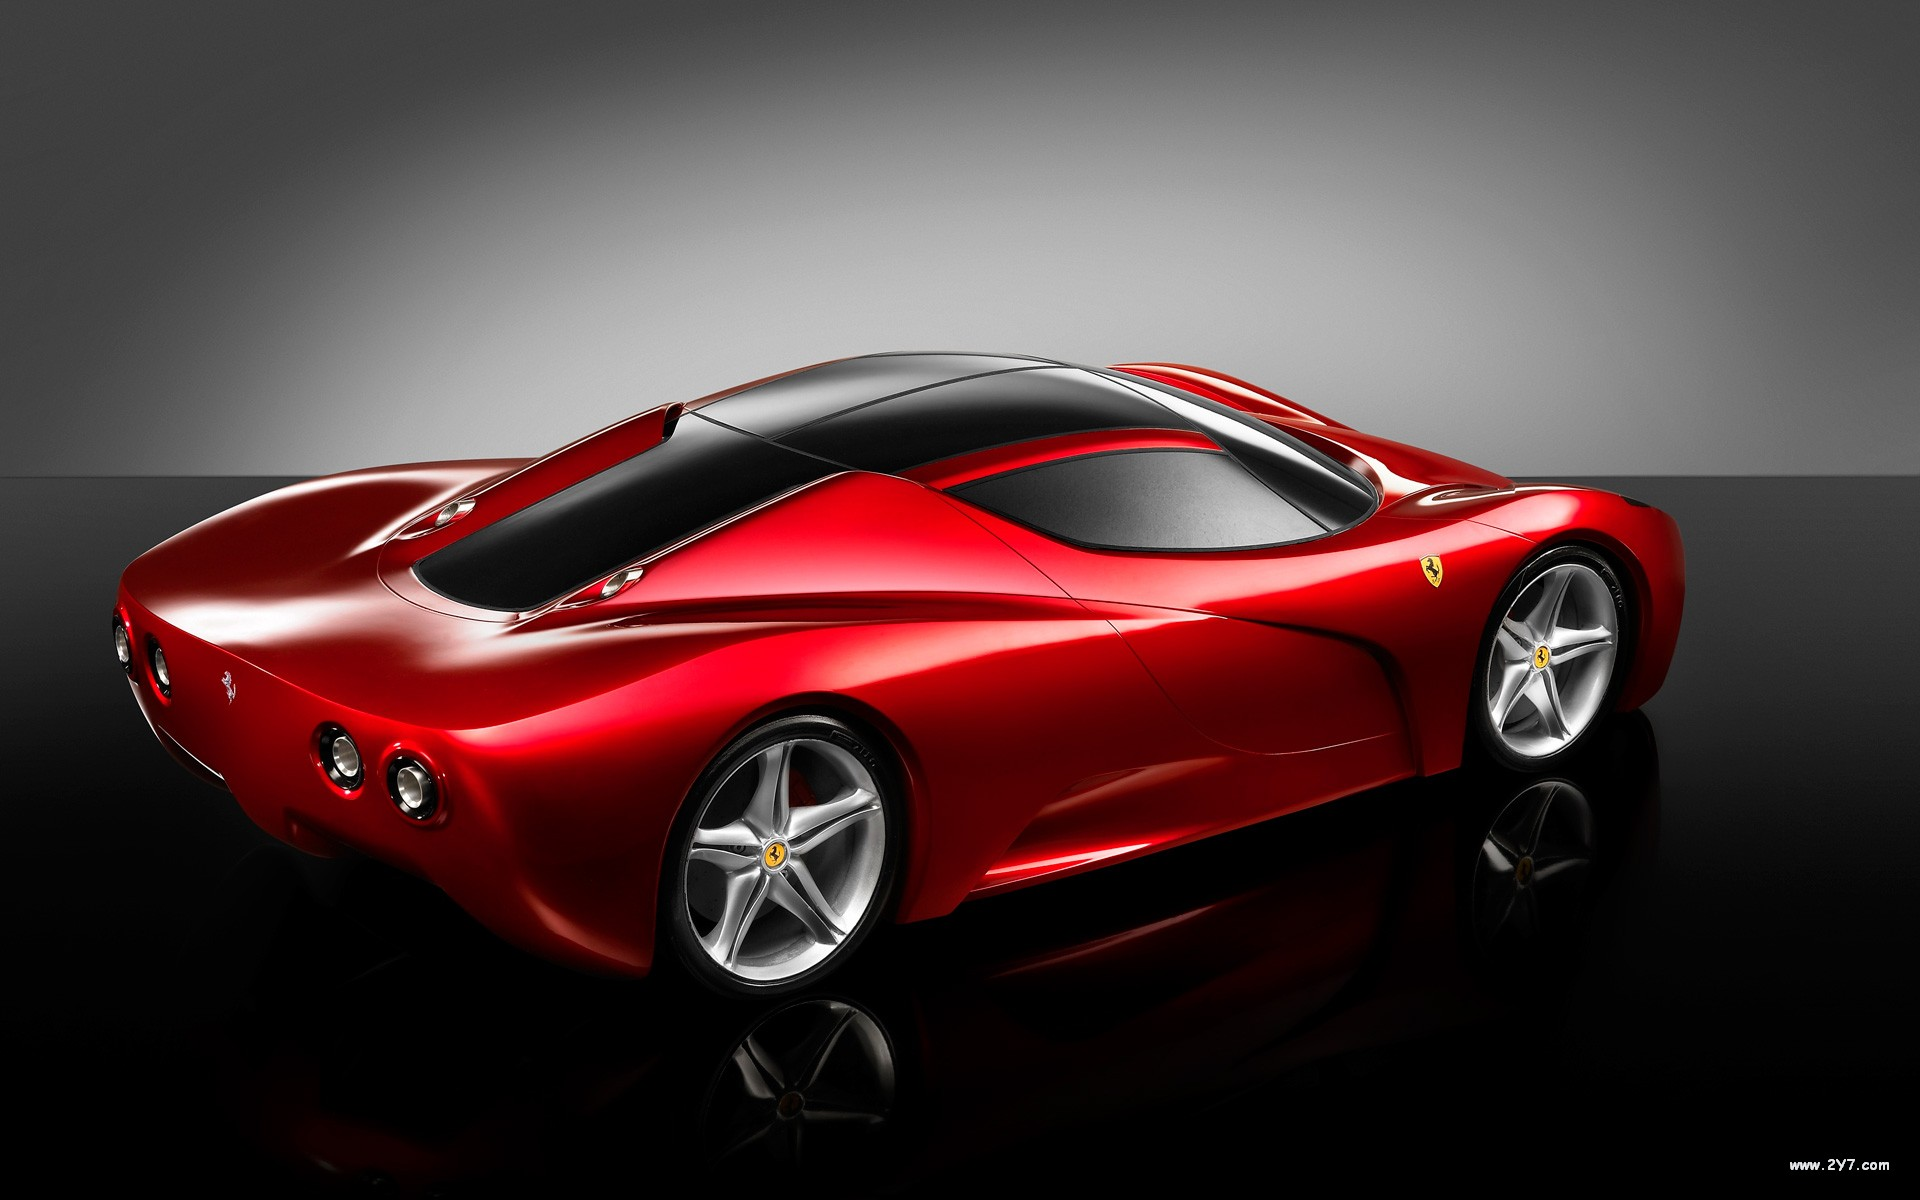 Ferrari Concept Car Wallpaper